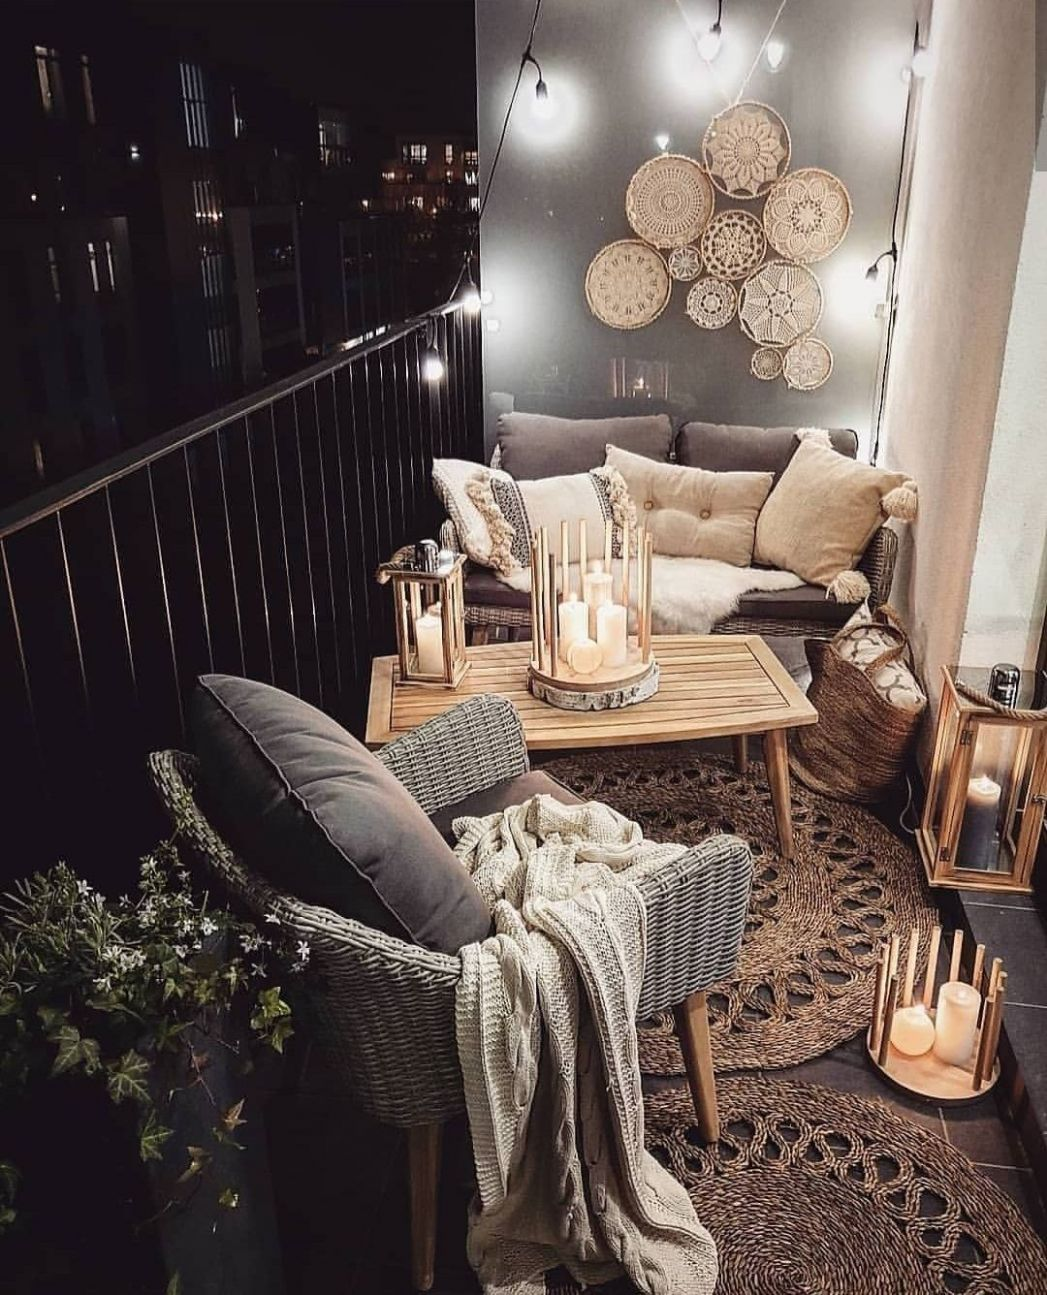 The Best Decorated Small Outdoor Balconies on Pinterest (With ..